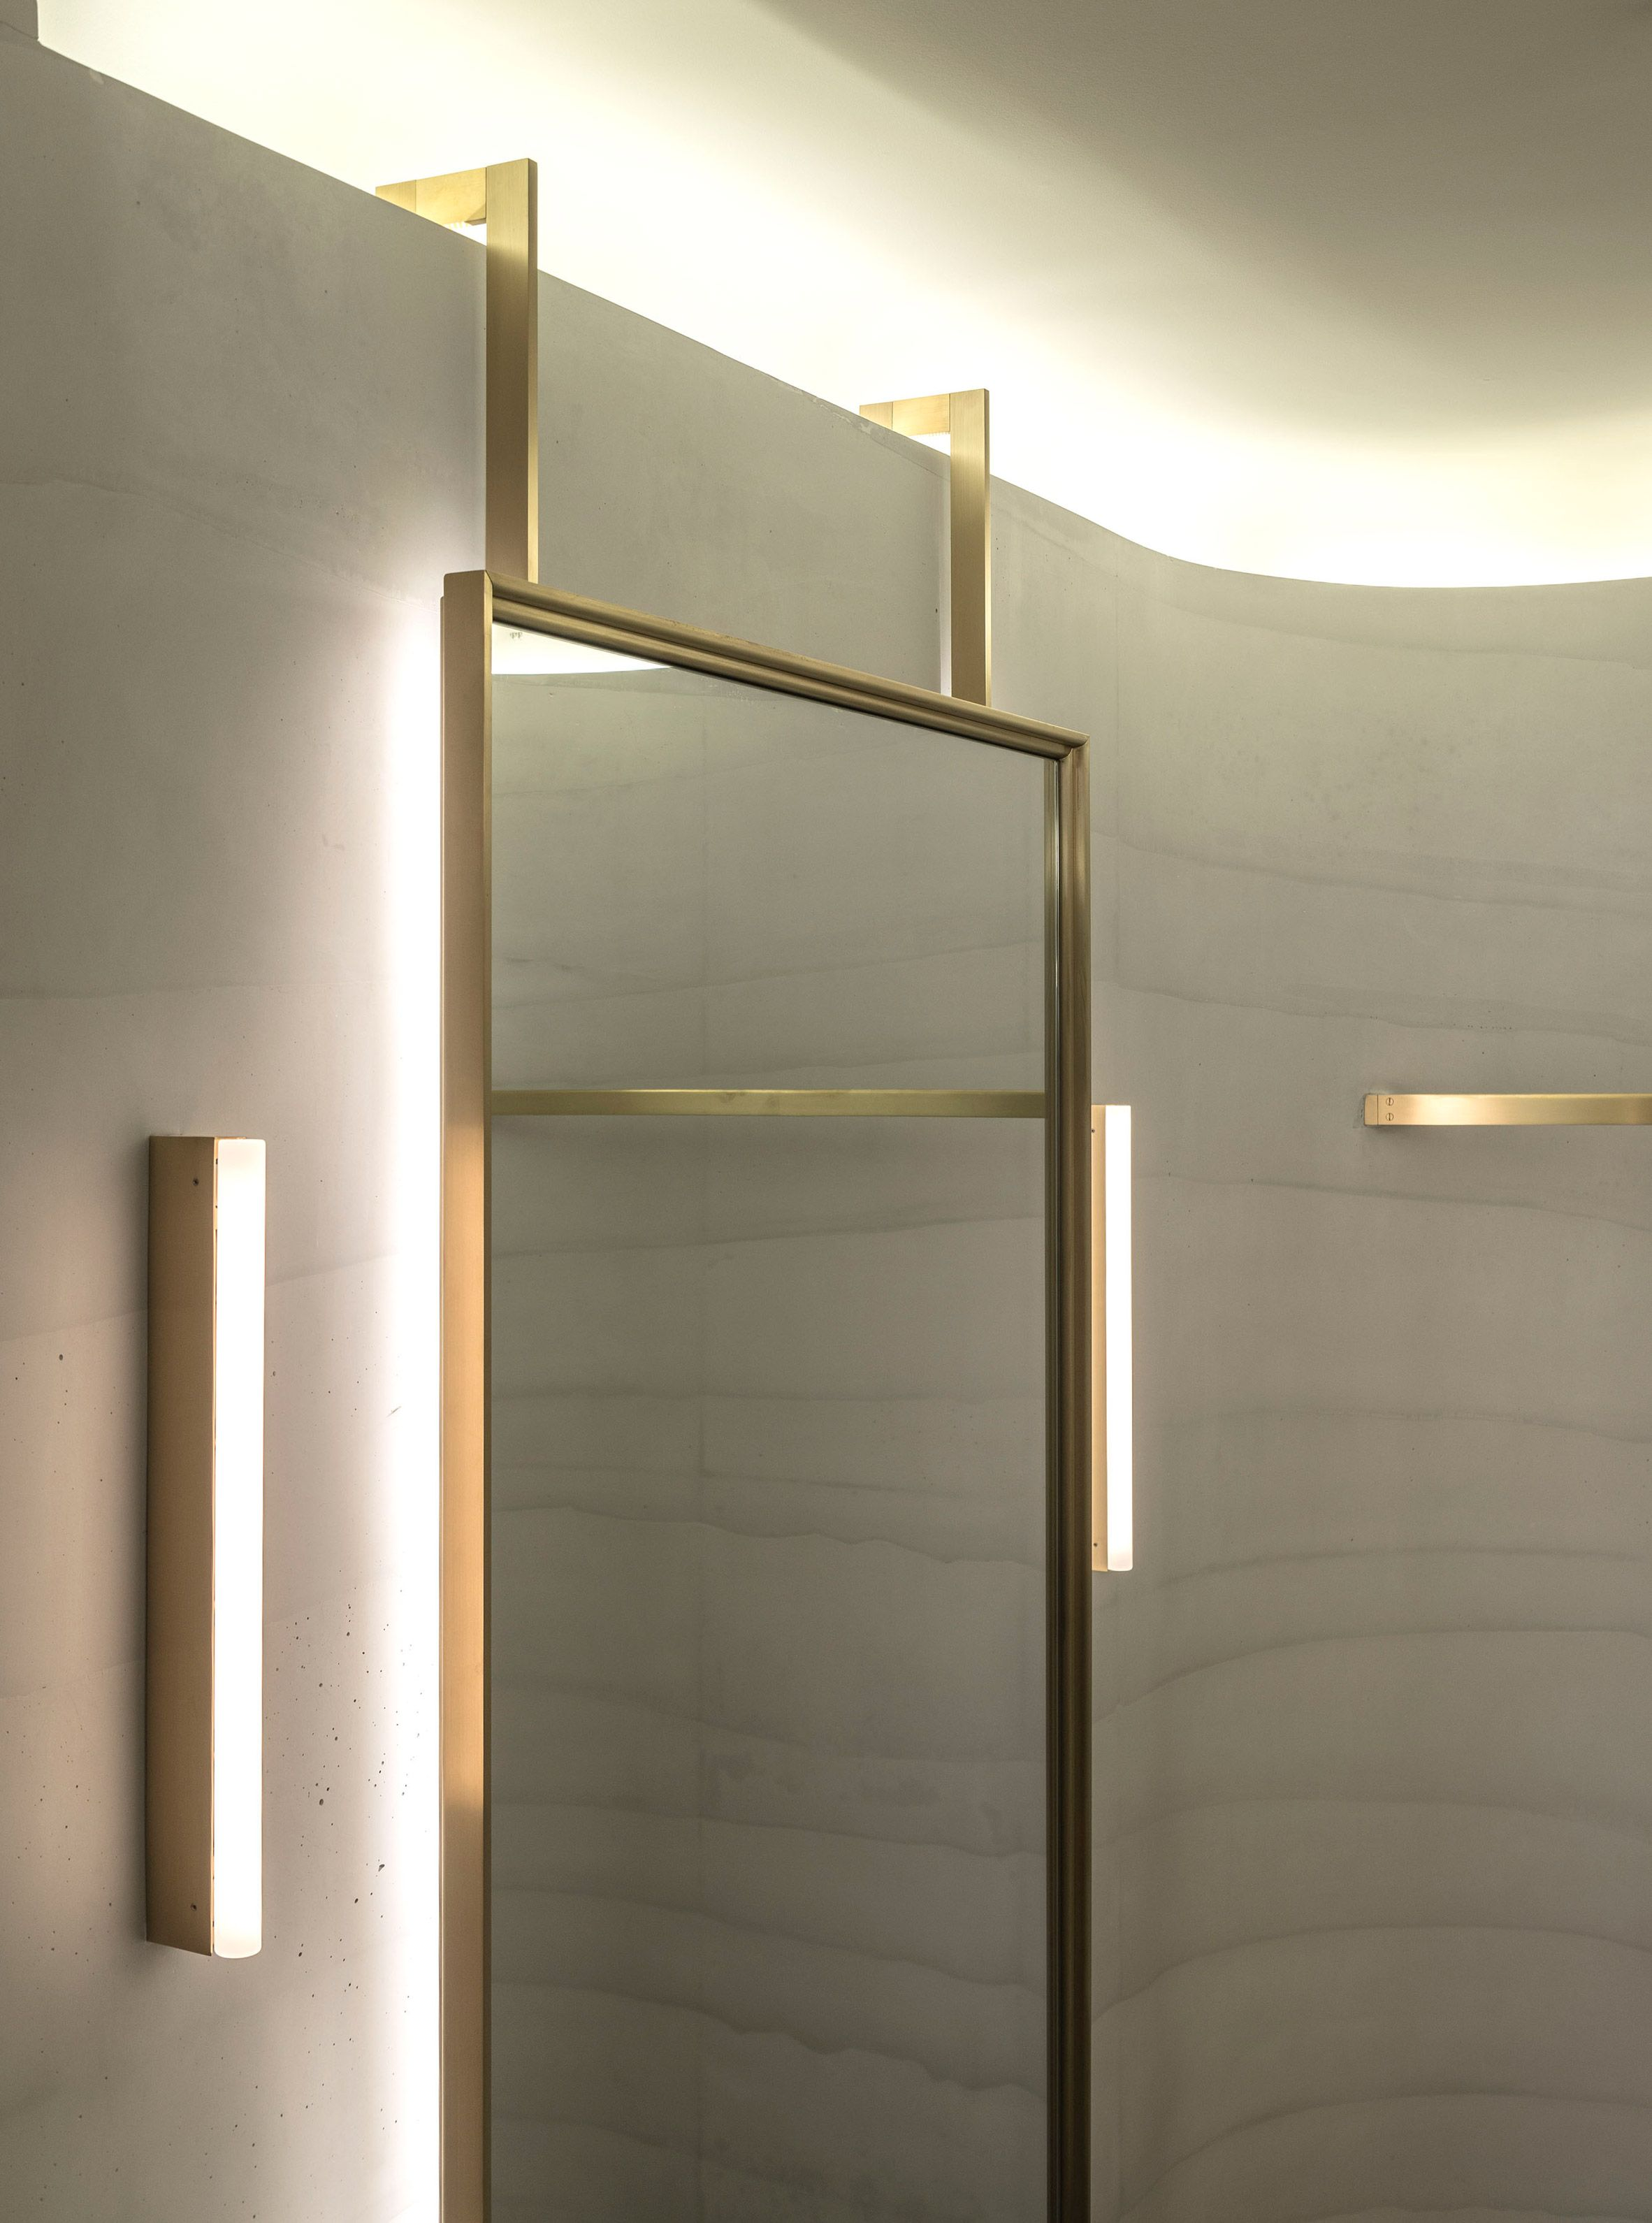 Striated Concrete Partitions Create Fitting Rooms At Thakoon S First Boutique Bathroom Mirror Design Store Design Interior Boutique Interior